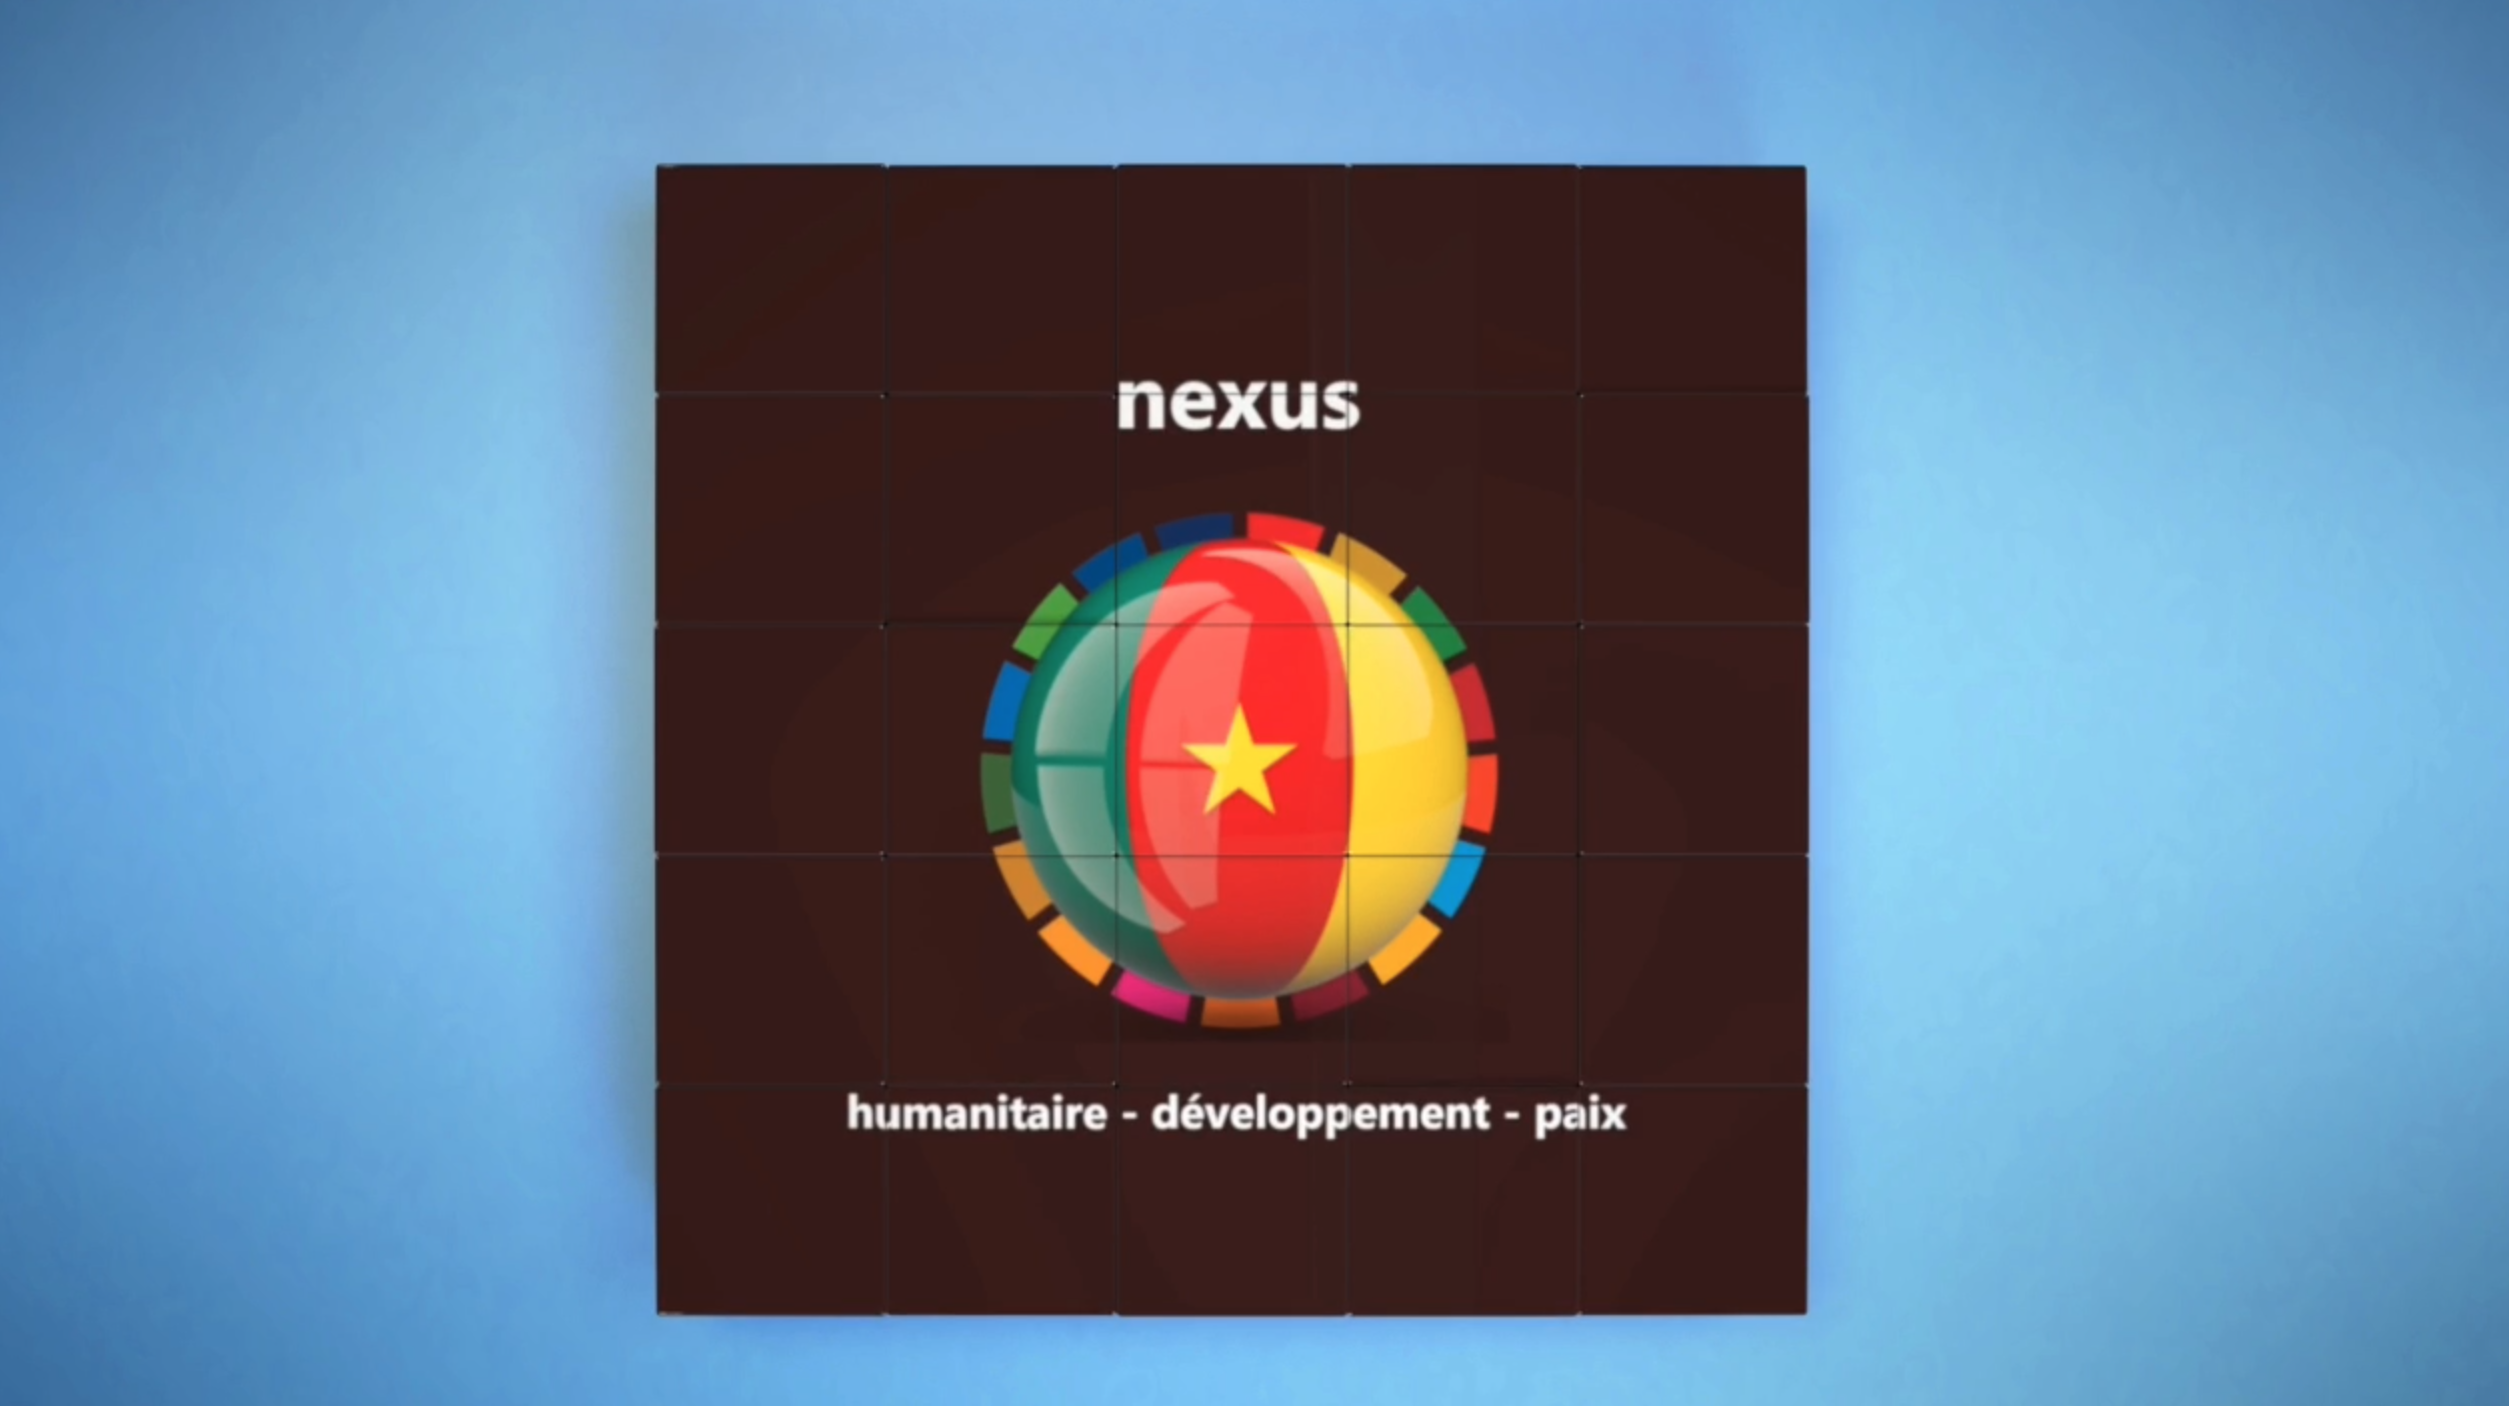 FROM STRATEGIC PLANNING TO IMPLEMENTATION - Cameroun operationalizes the humanitarian-development-peace nexus